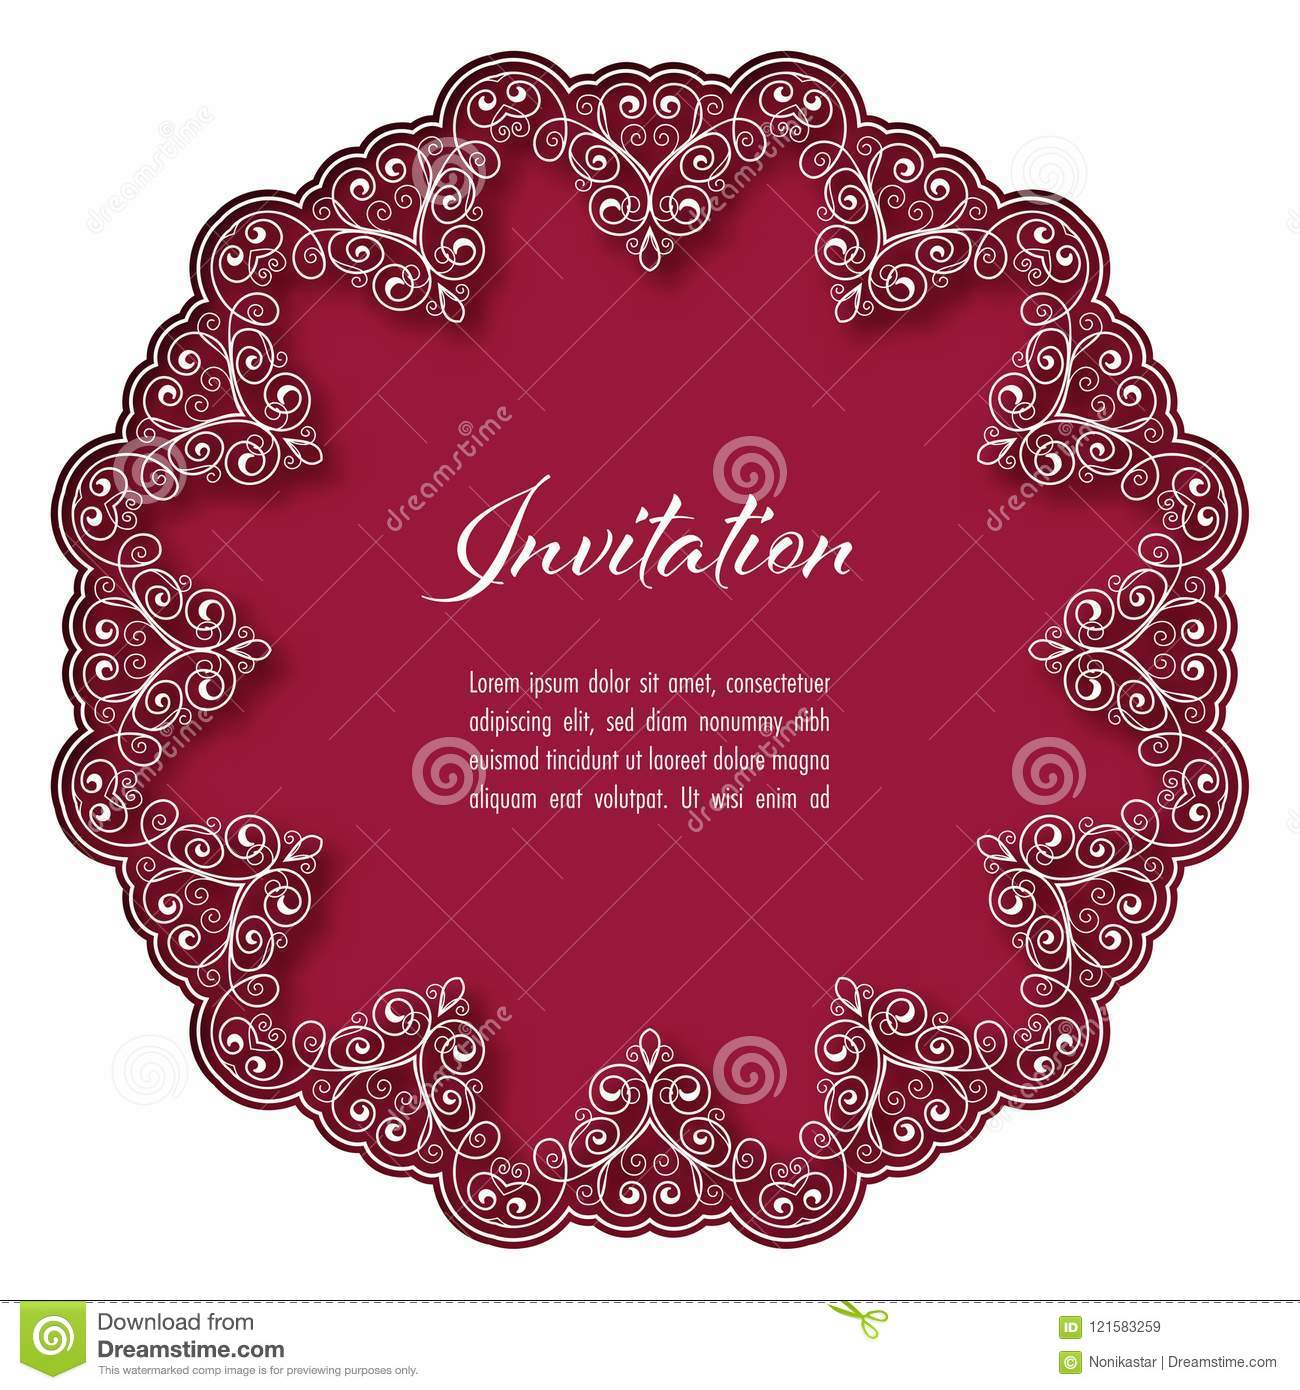 Modern Wedding Invitation Software Free Ideas - Invitations and ...